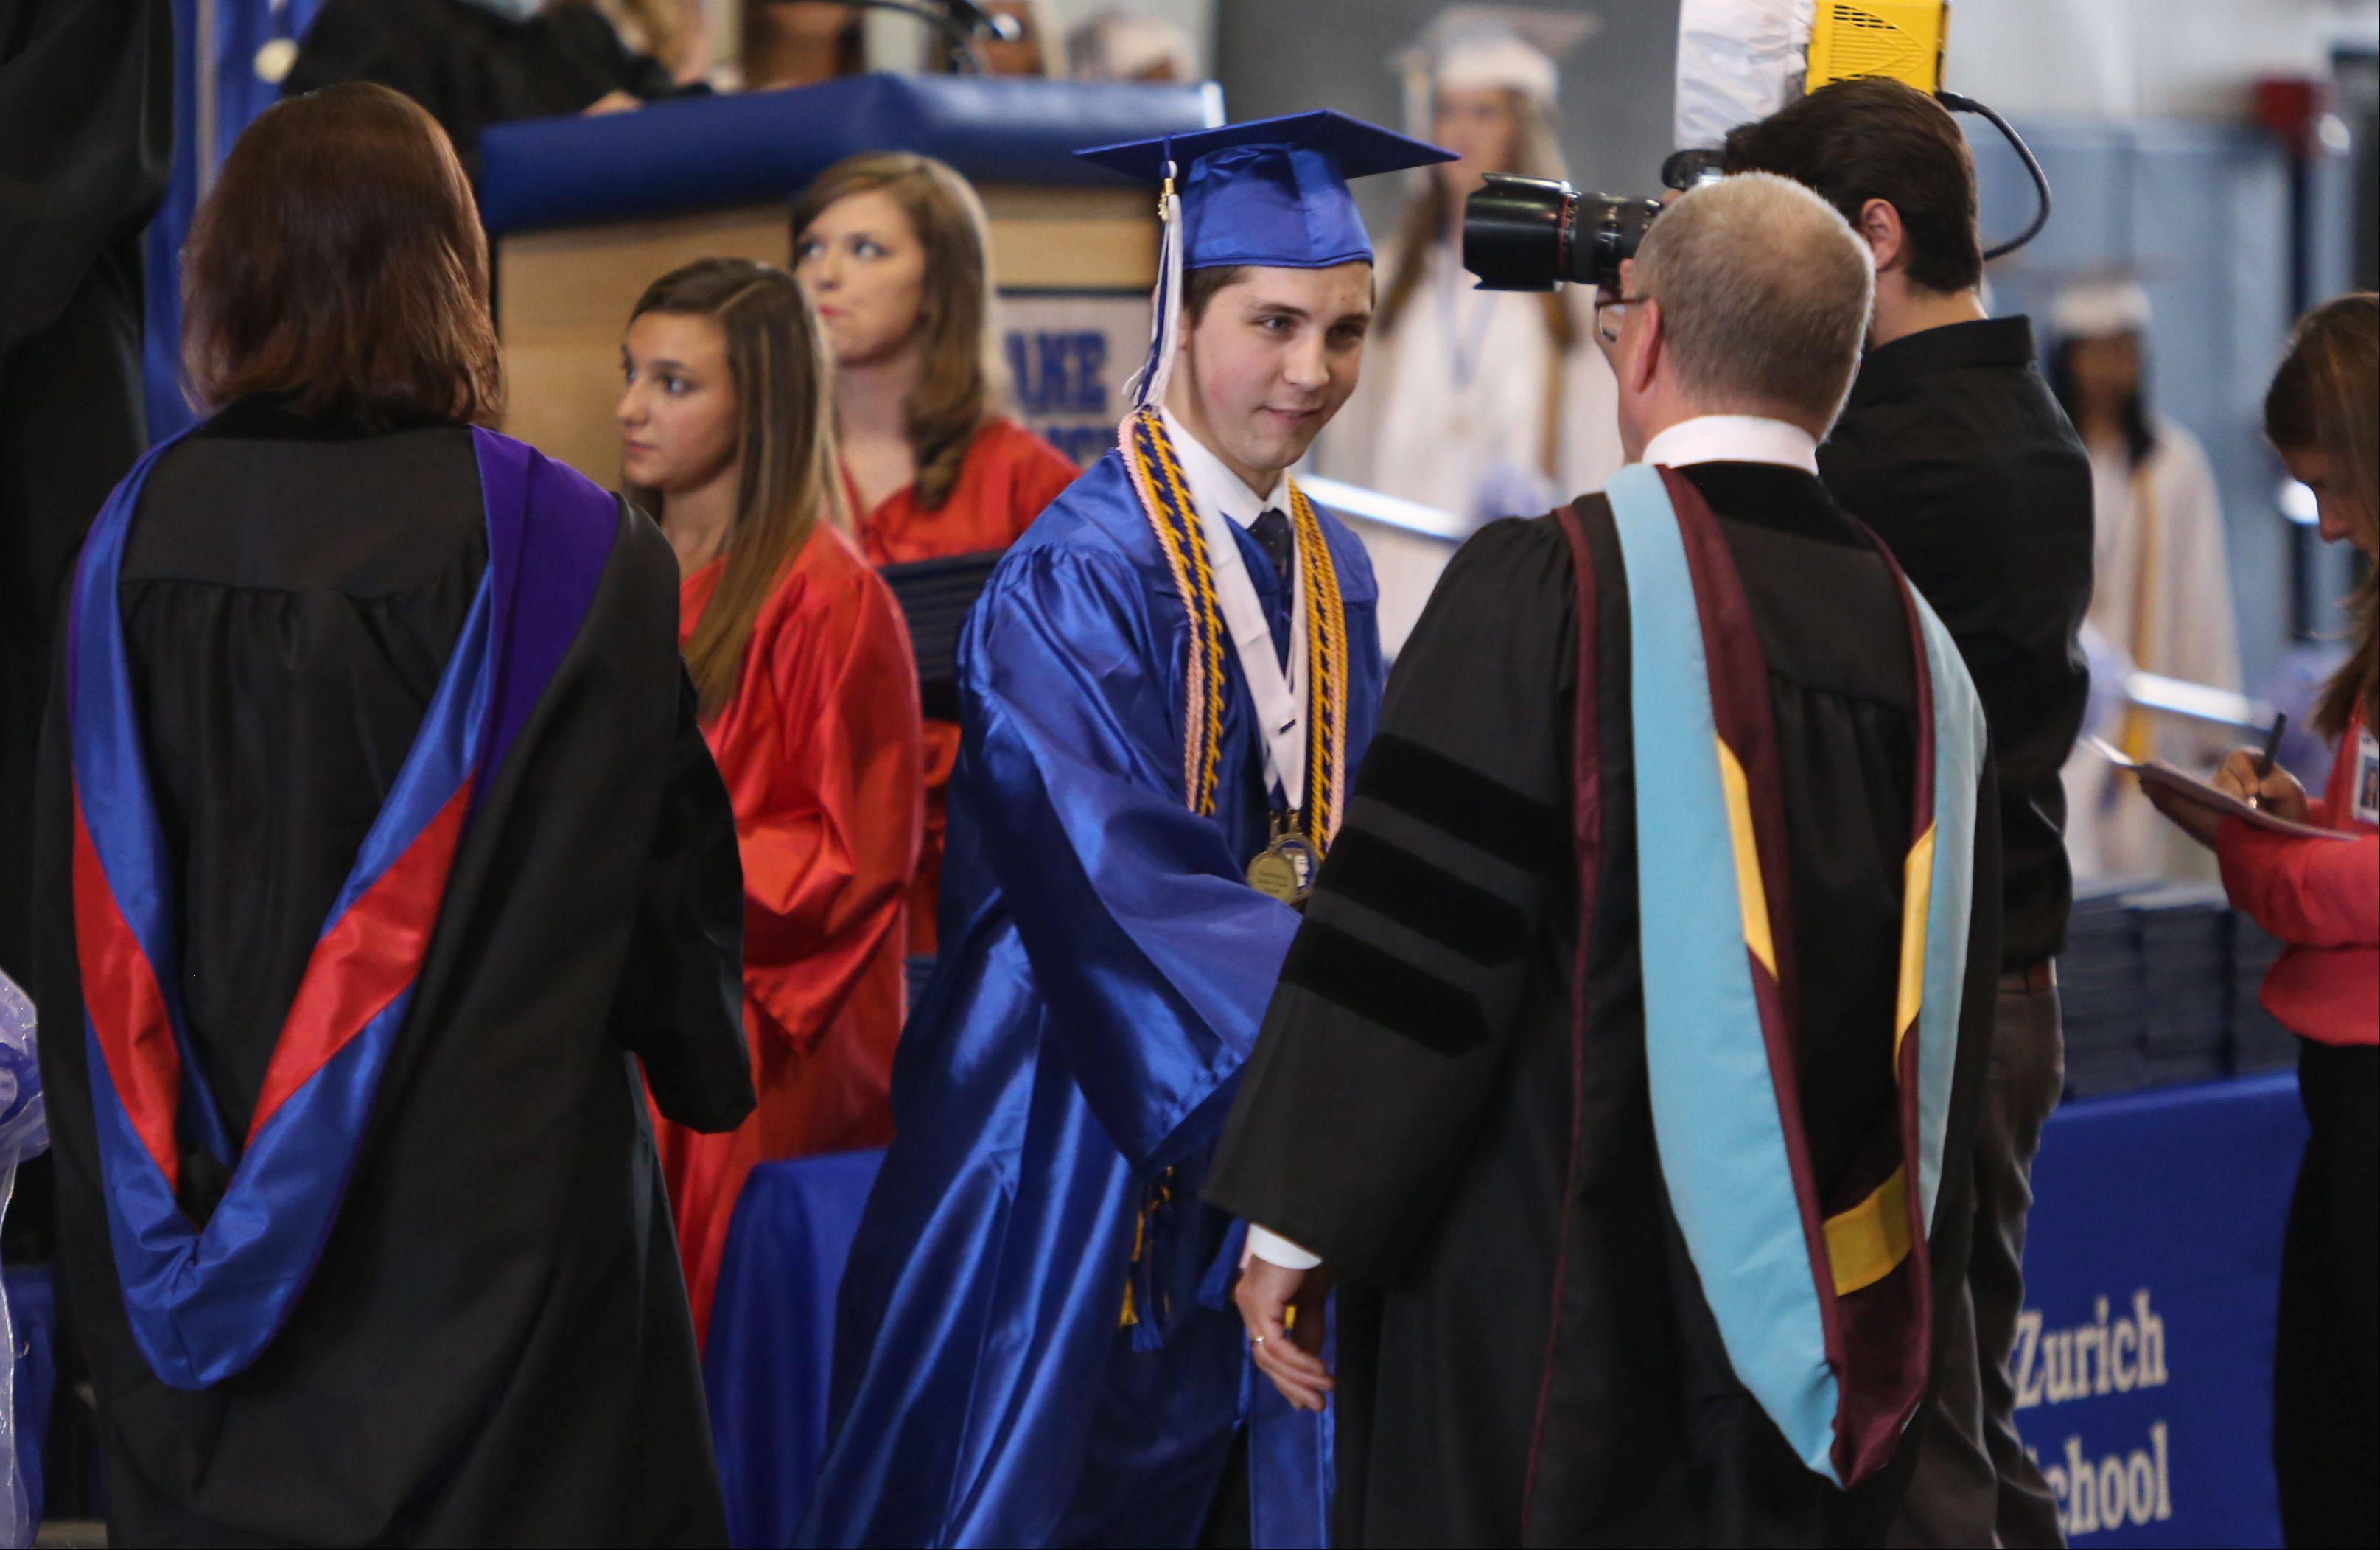 Images from the Lake Zurich High School graduation on Sunday, May 26 in Lake Zurich.